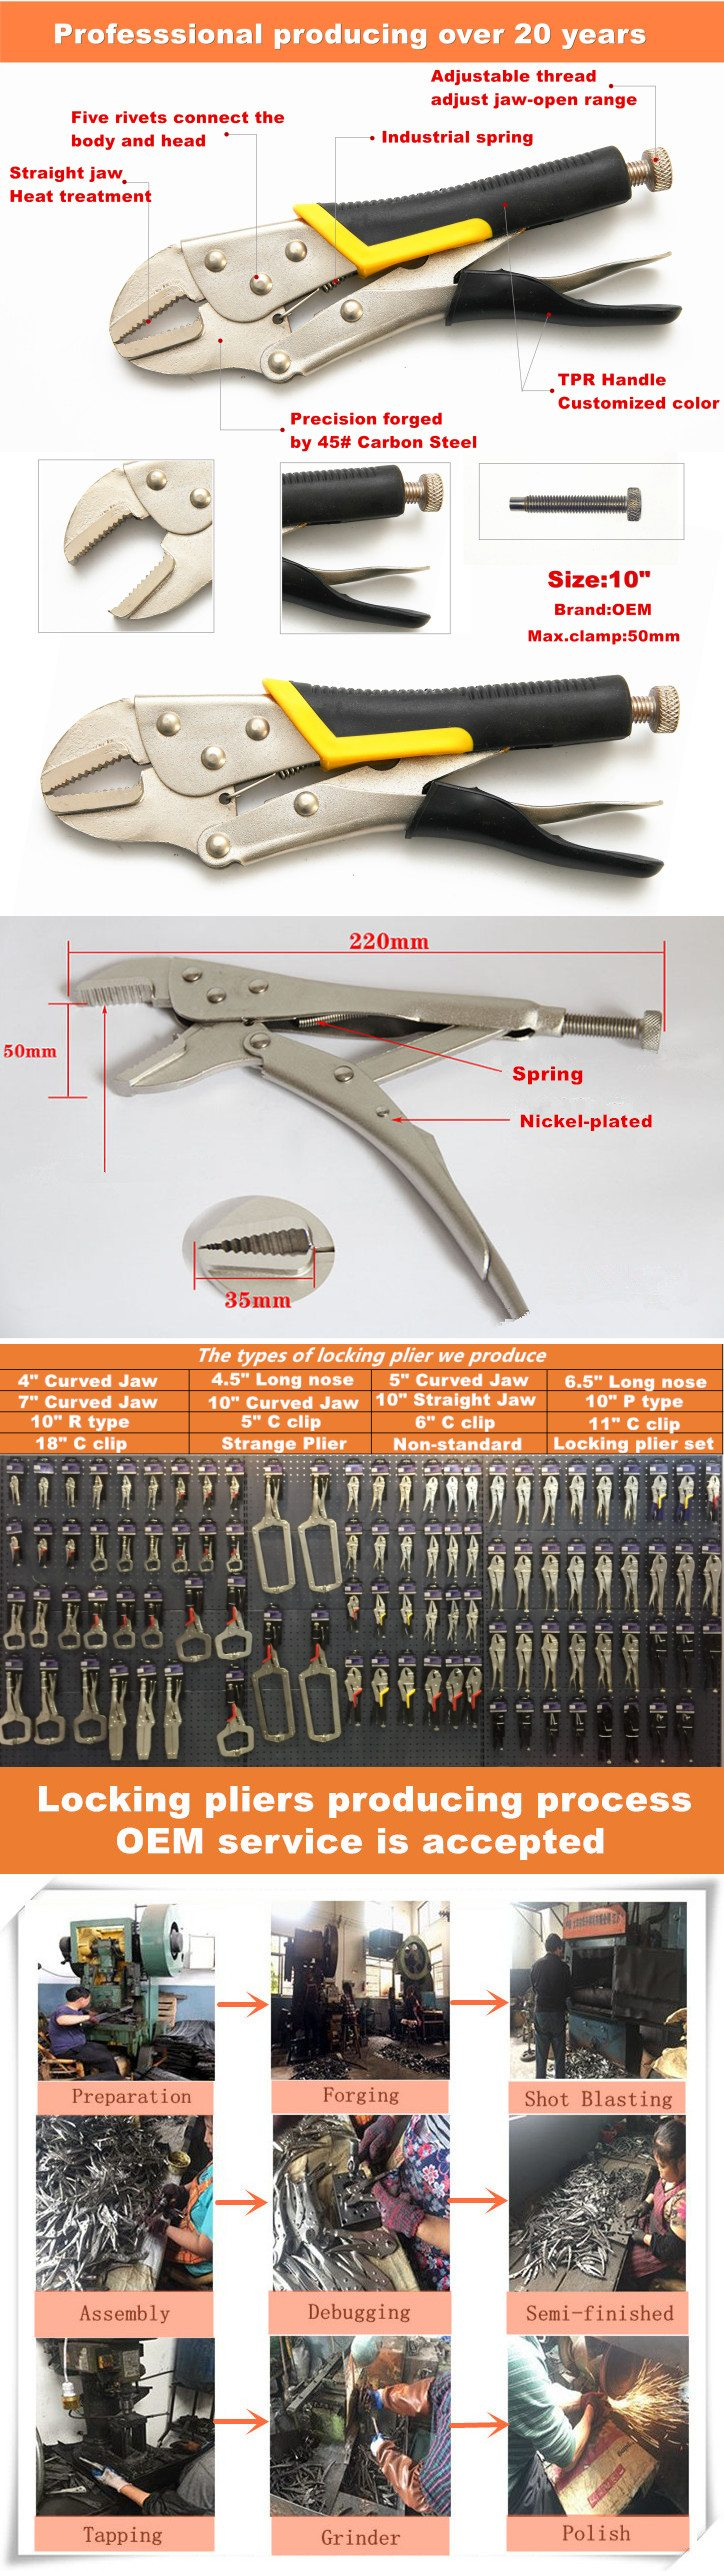 10″ Backhand Straight Jaw Locking Pliers with Jacket